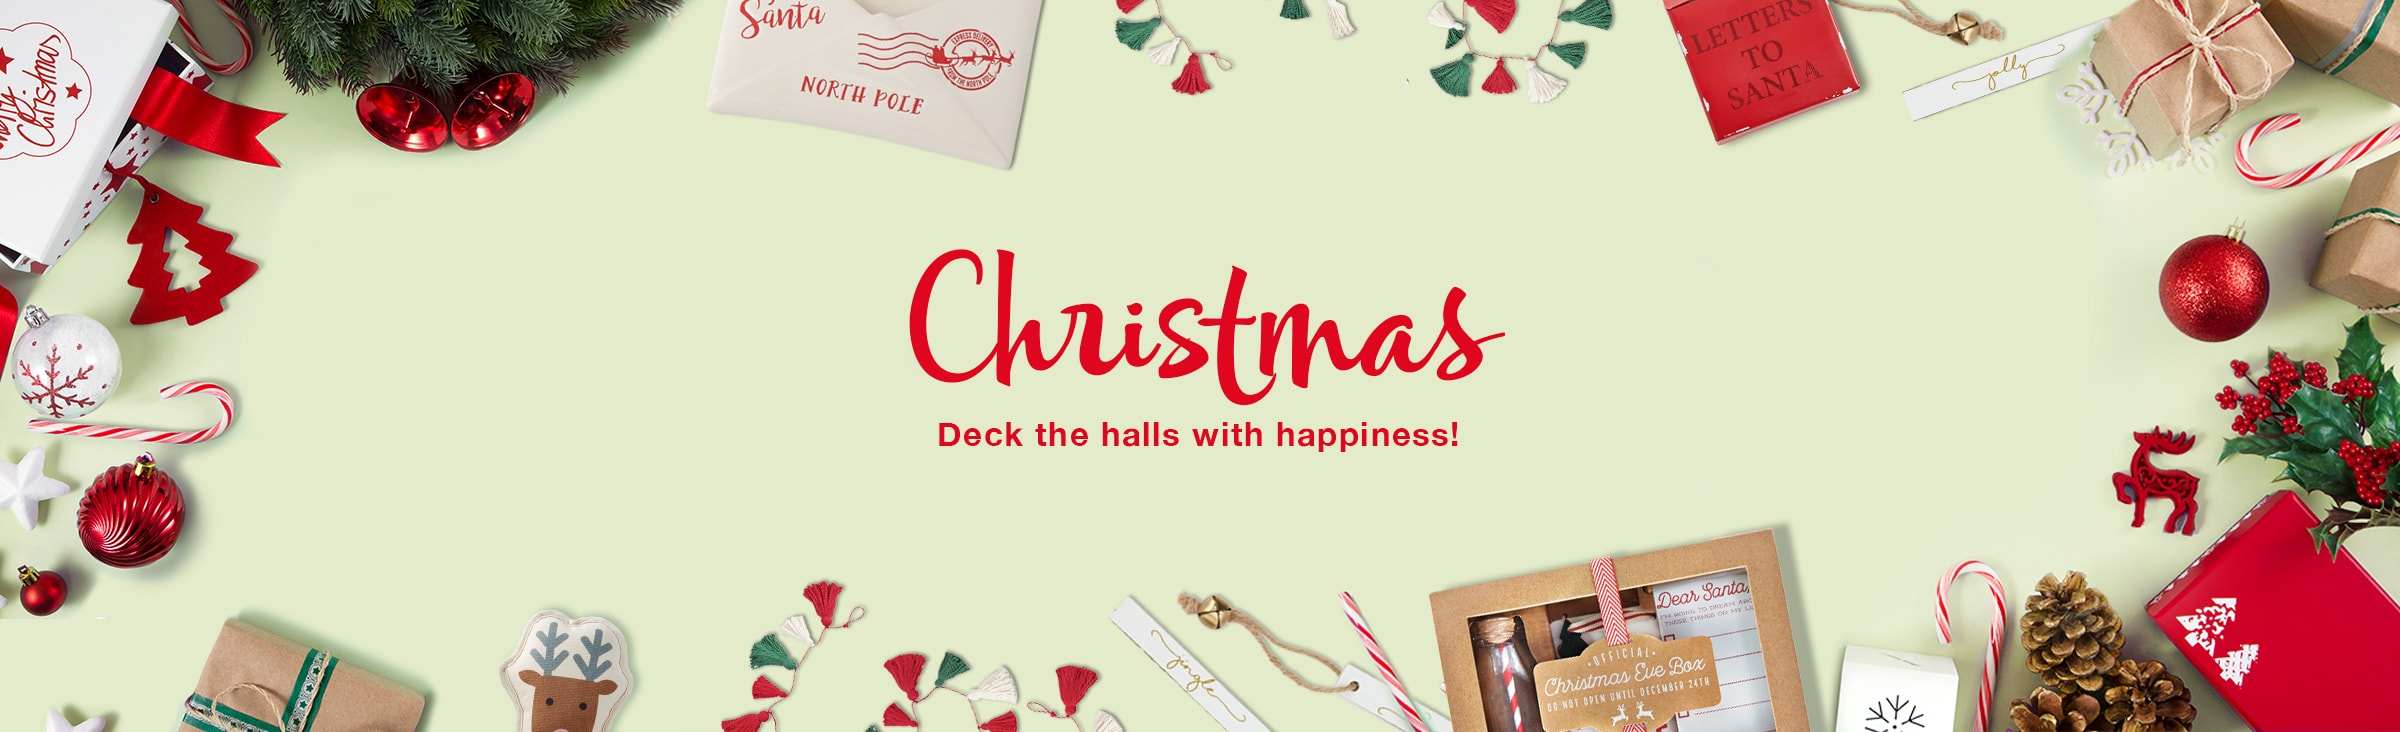 Christmas Deck the halls with happiness! Christmas gifts, cards, and party goods.